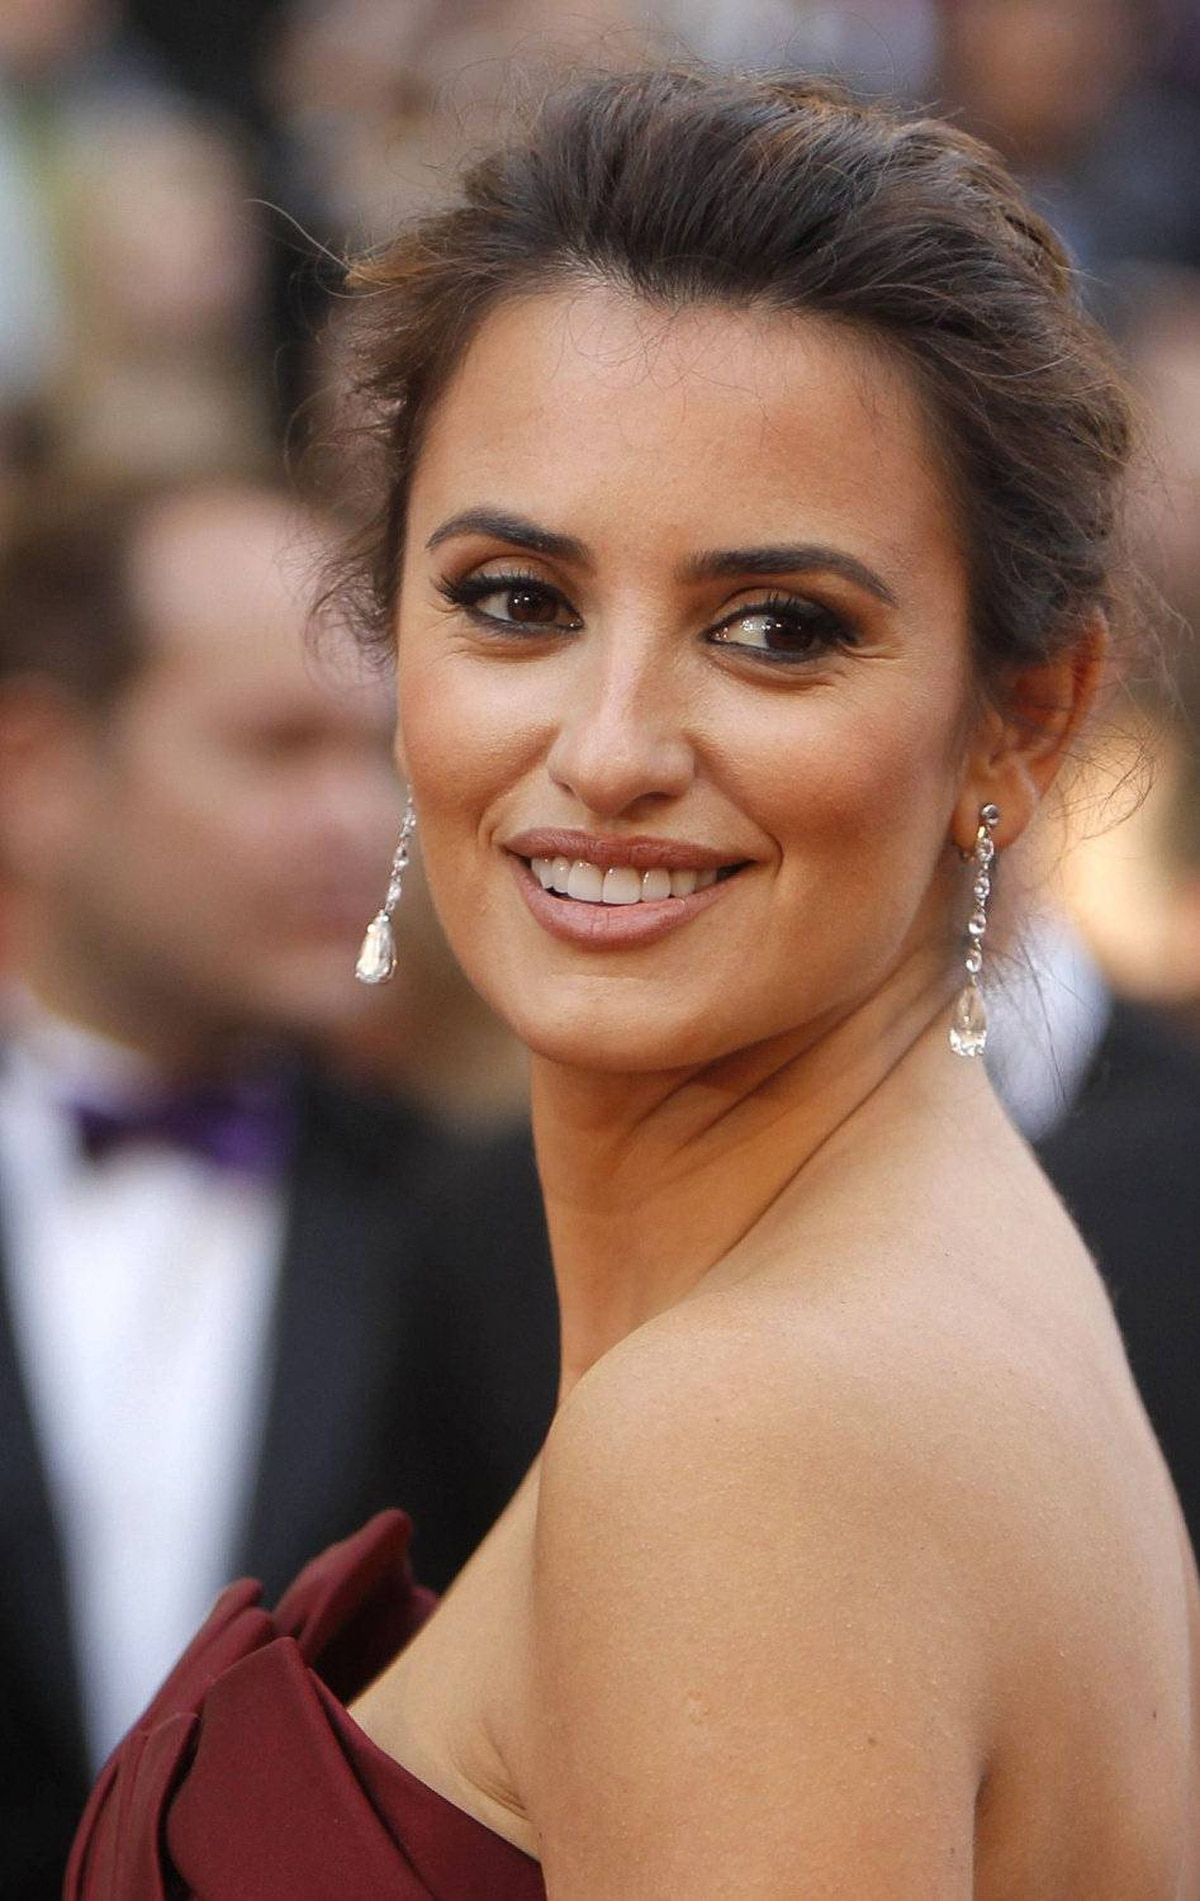 PENELOPE CRUZ 'It is a revolutionary experience. That's the best way I can describe it. It transforms you completely, in a second. Nature is very wise and gives you nine months to prepare, but in that moment -when you see that face, you are transformed forever.' Source: Vogue